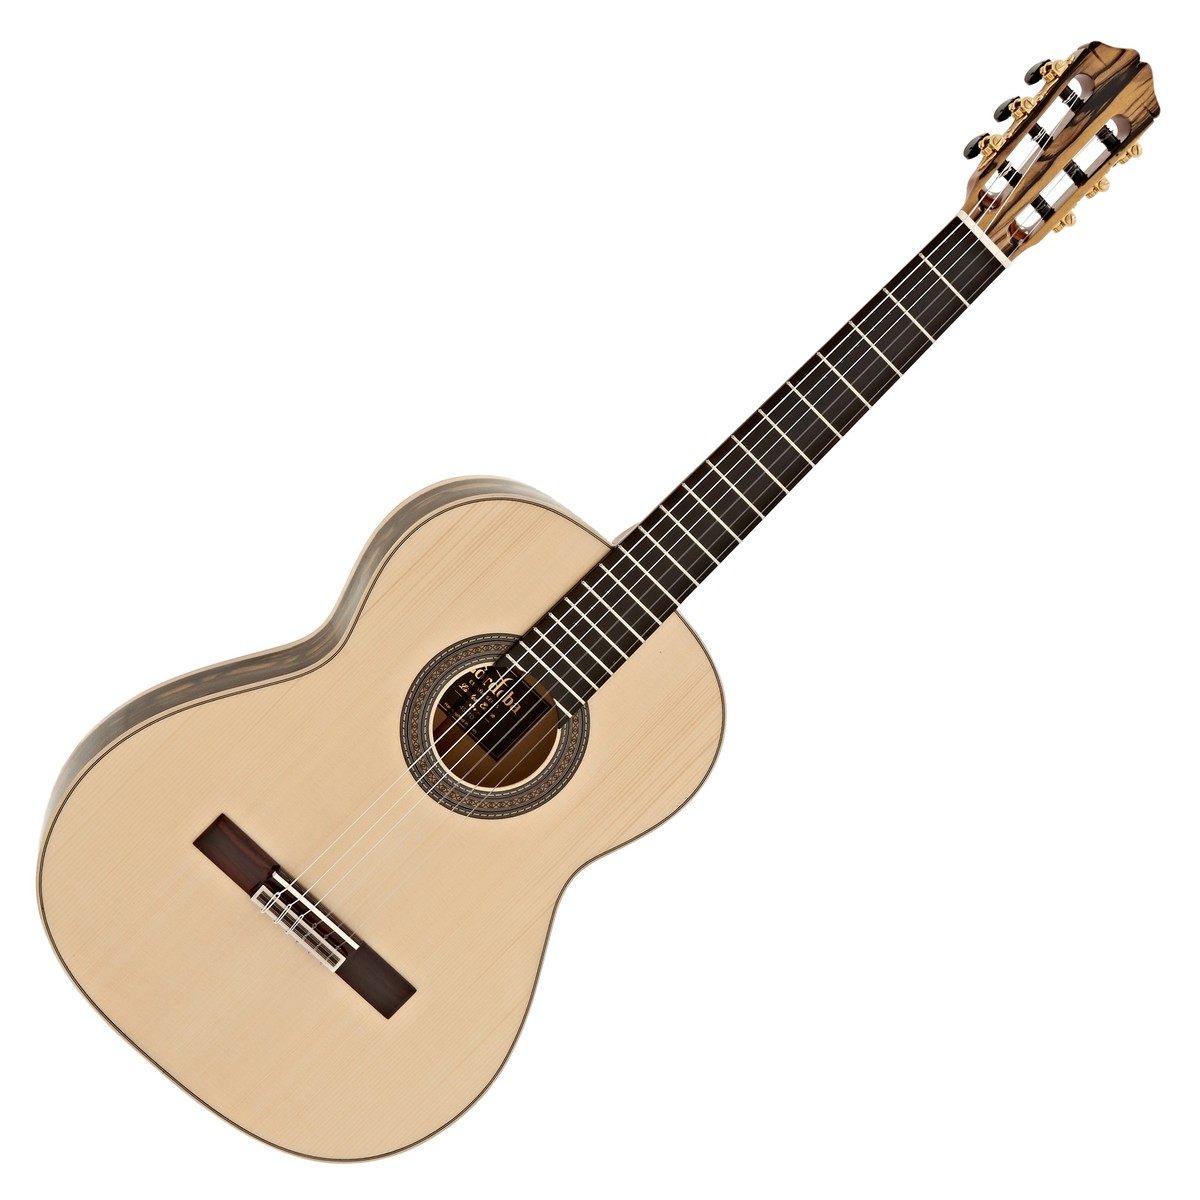 1200x1200 Cordoba Espana 45 Limited Classical Guitar, Black And White Ebony